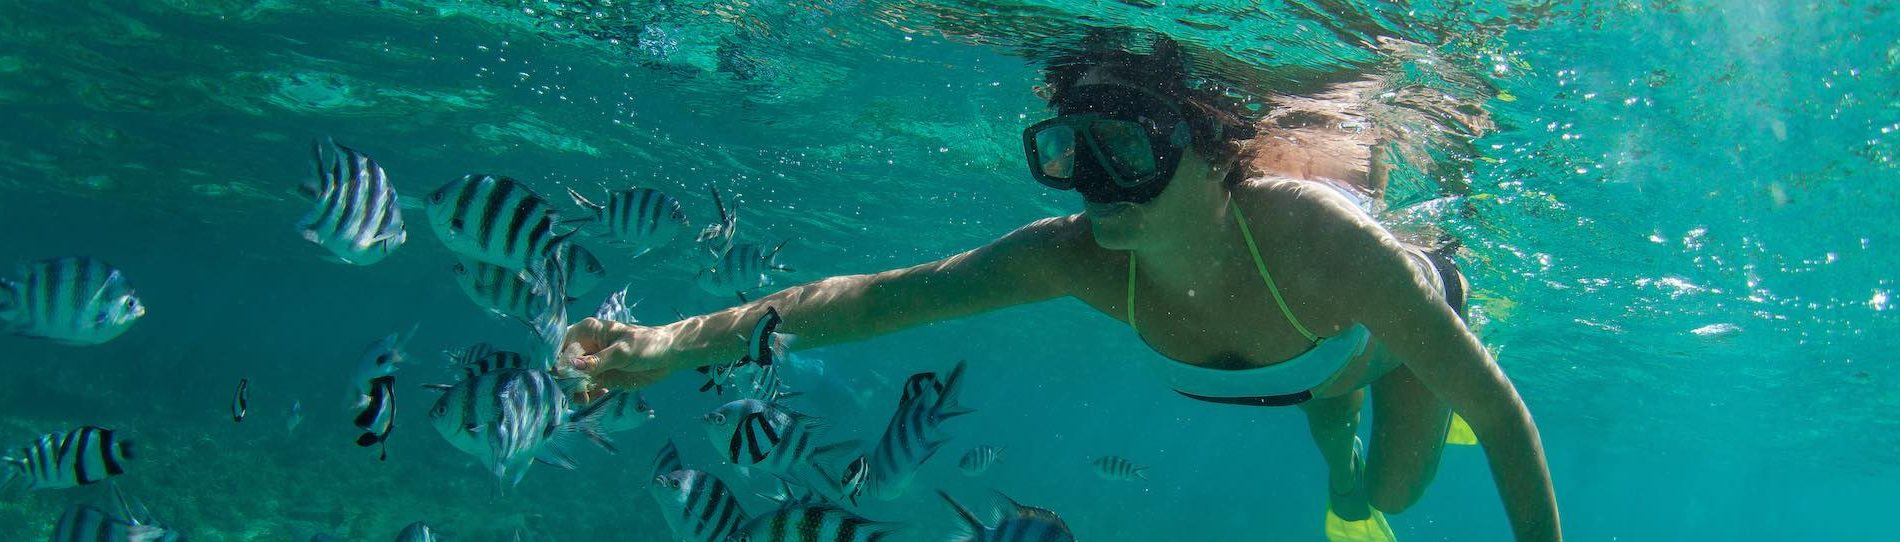 buck snorkelling with fish at airlie beach